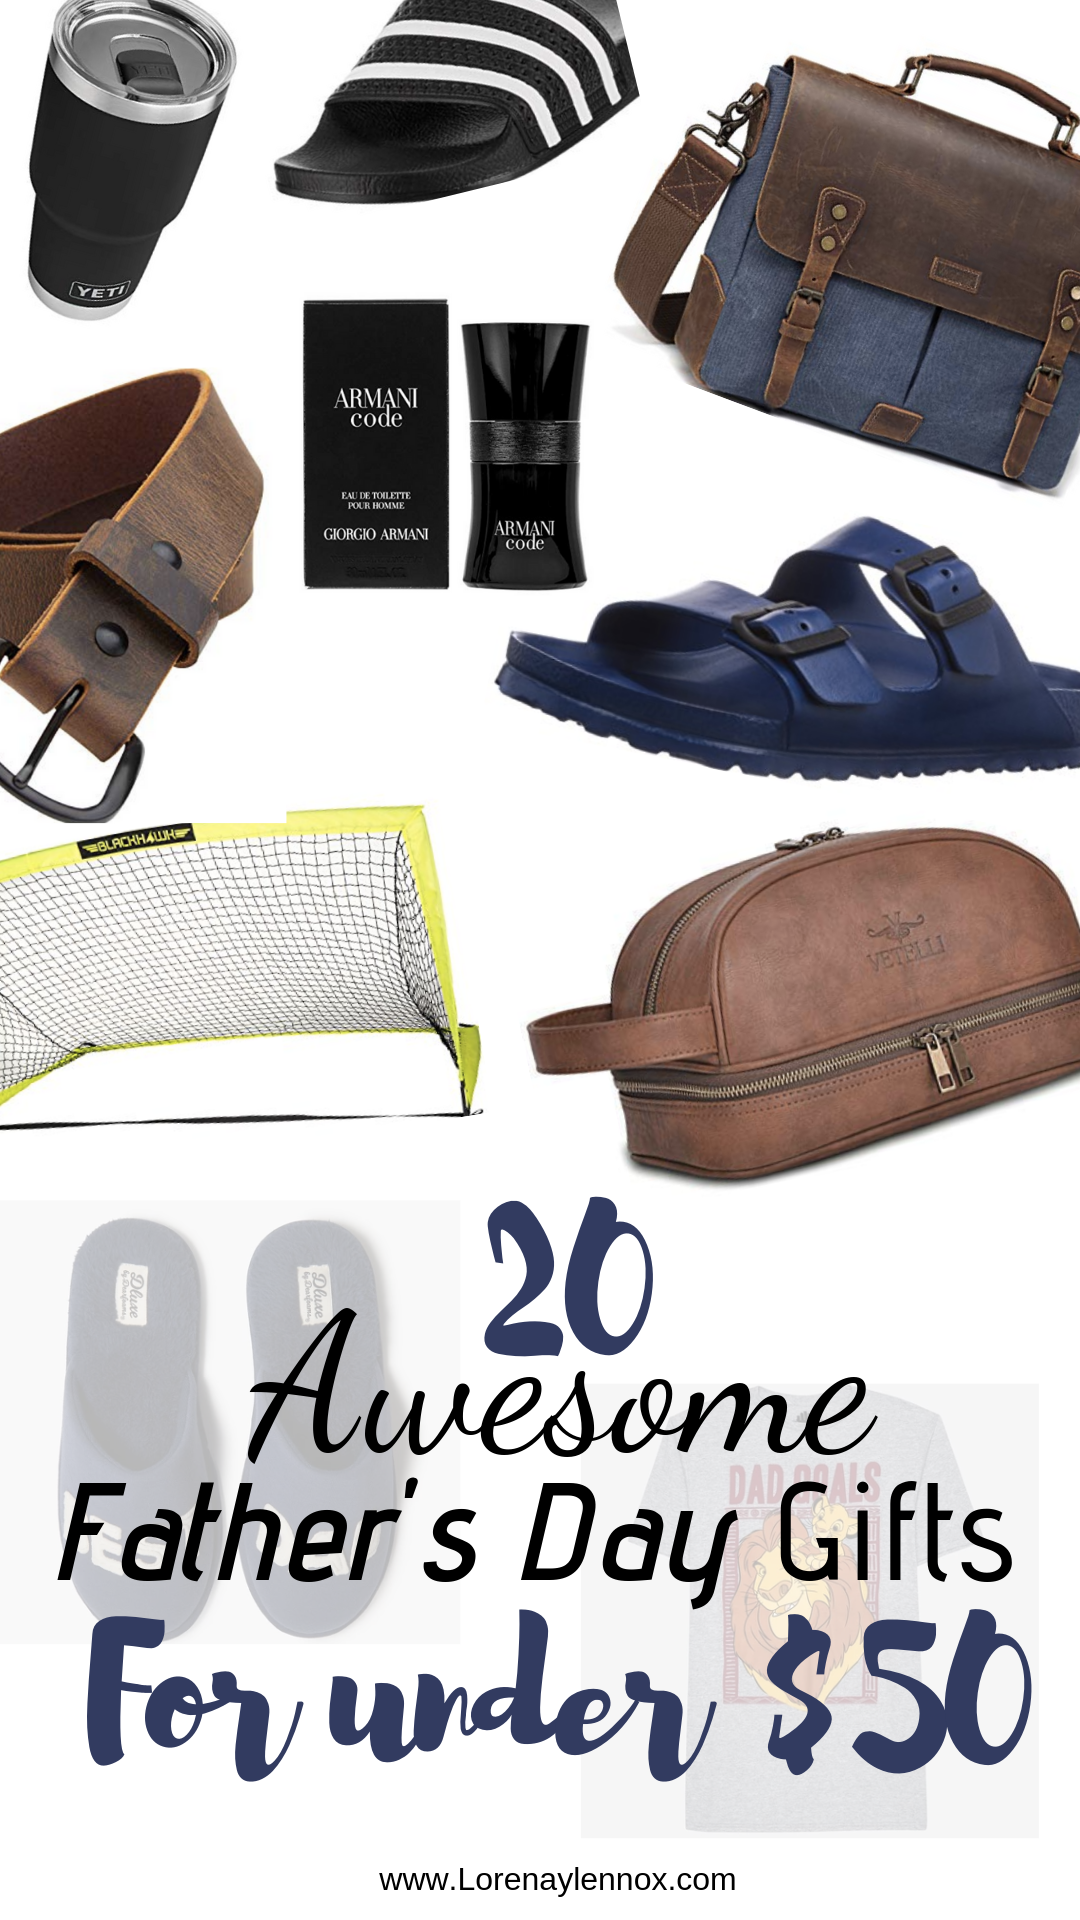 20 Awesome Father's Day Gifts for Under 50 Dollars.png